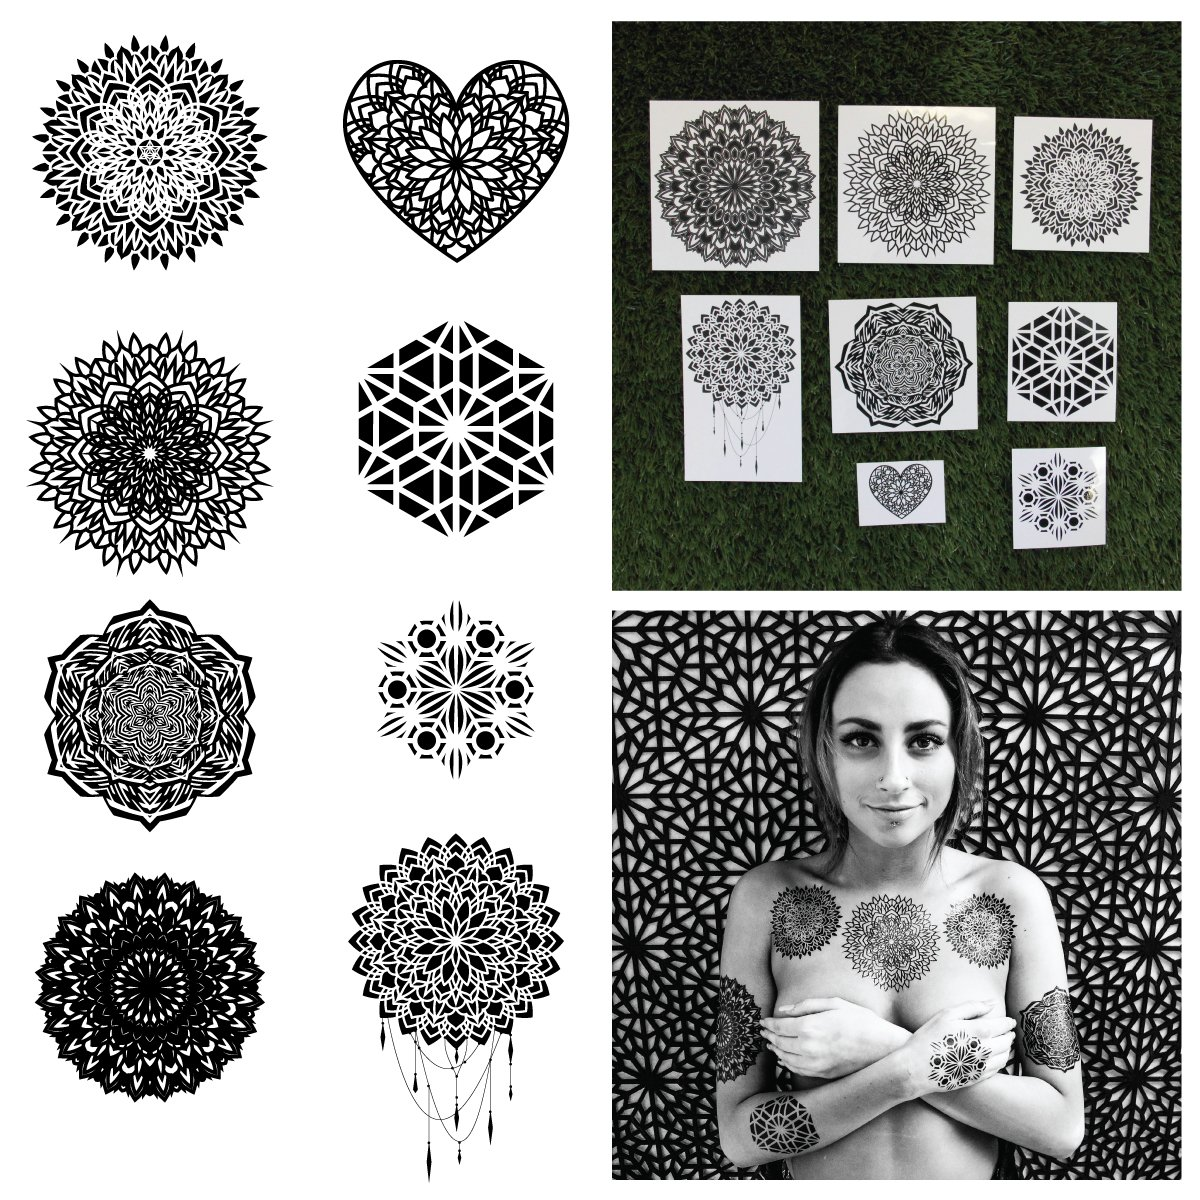 Tattify Assorted Mandala Long Lasting Temporary Tattoos That Look Real, Includes 16 Tattoos, 2 of Each Design in The Ascension Collection, Safe for All Skin Types and Easy To Apply and Remove